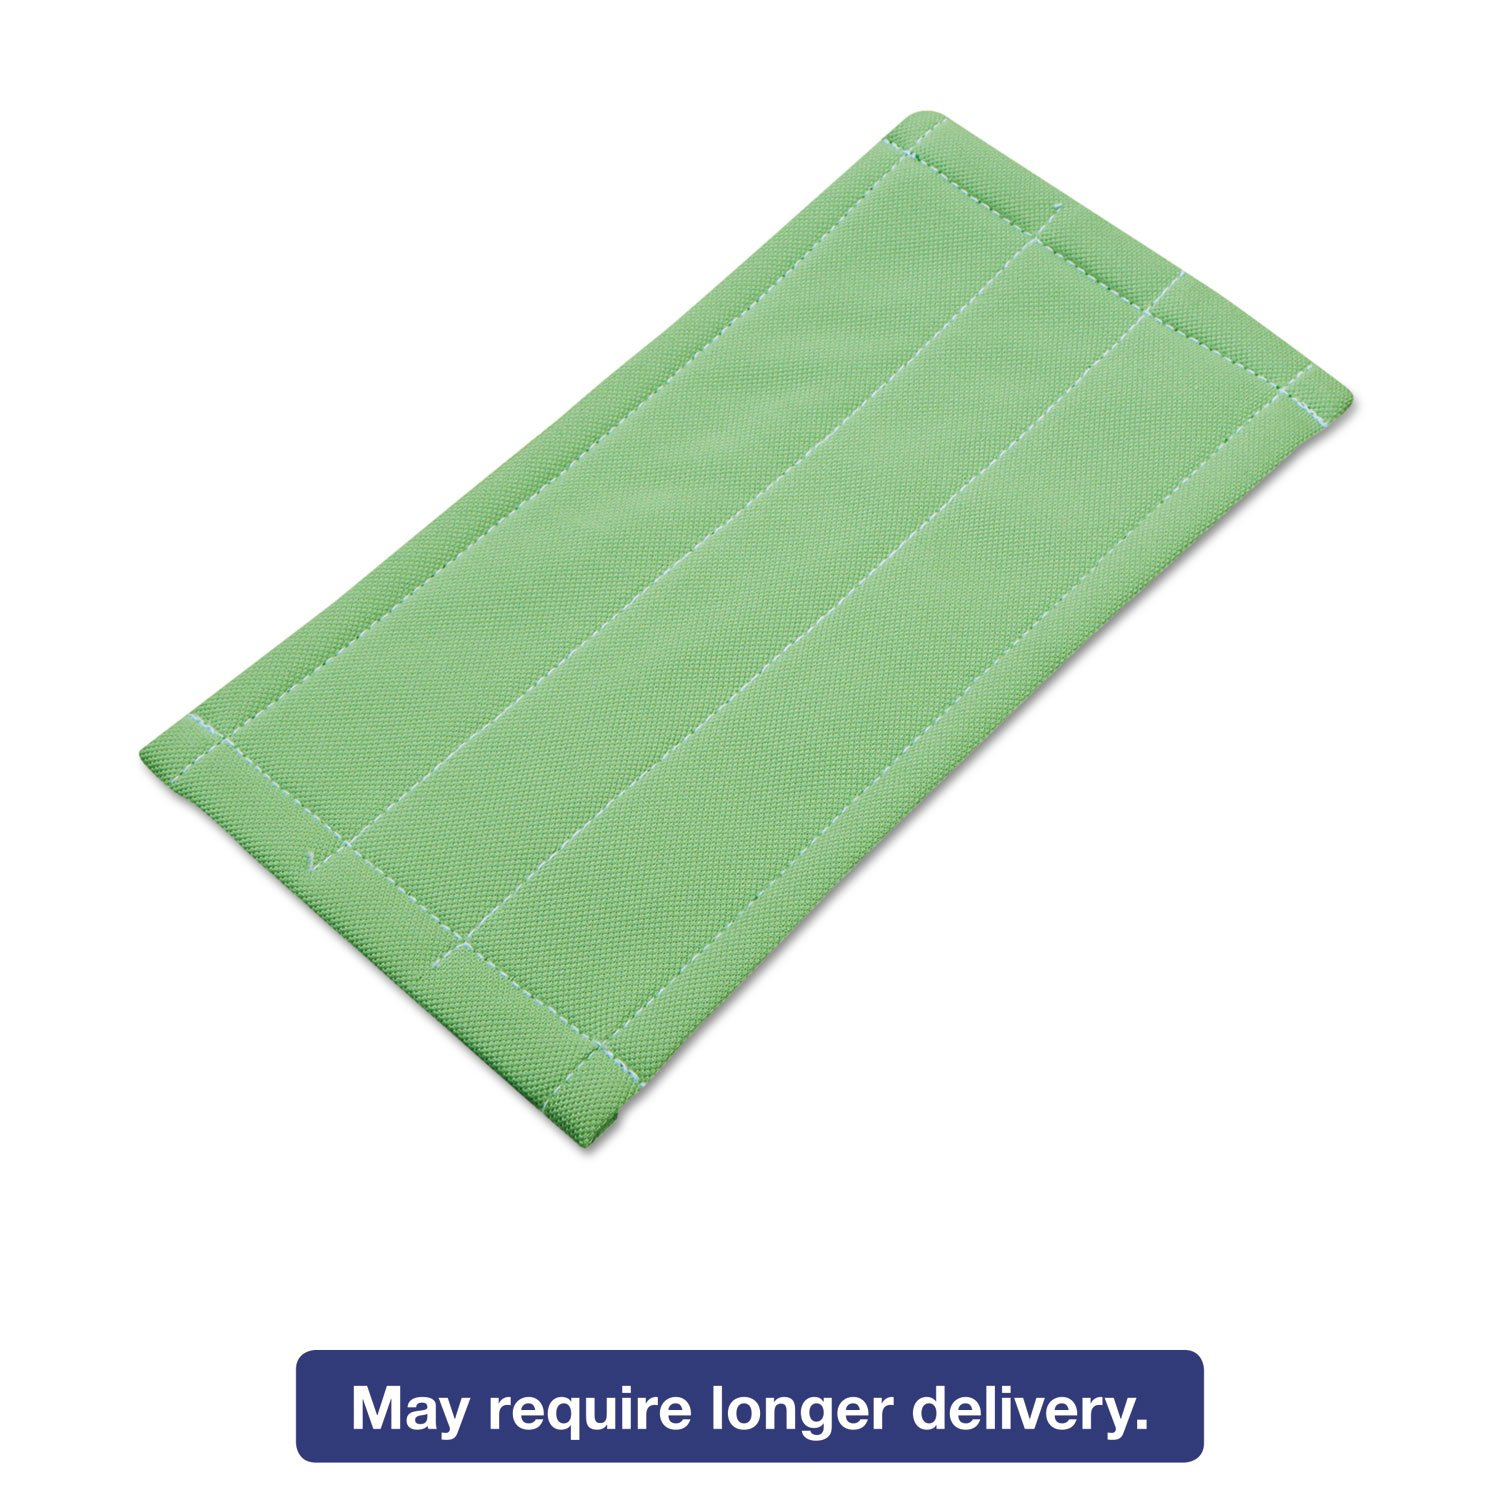 Unger Microfiber Cleaning Pad, Green, 6 x 8, 5/Carton